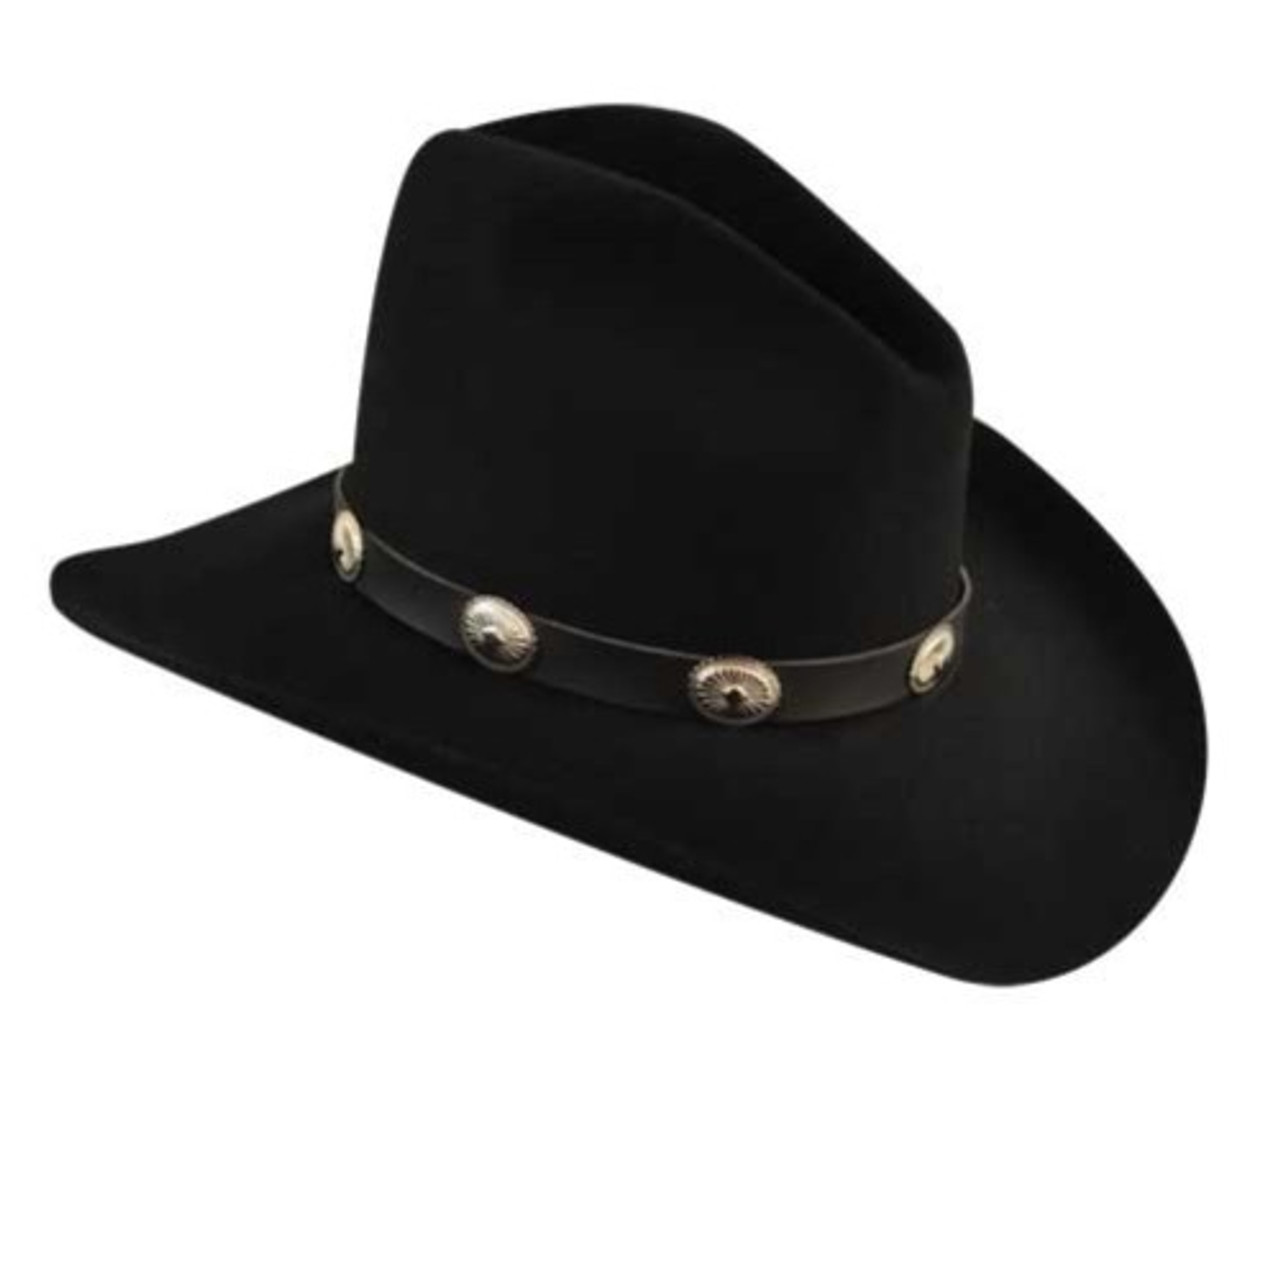 4bad5b5c7 Bailey Tombstone Black Felt Western Hat